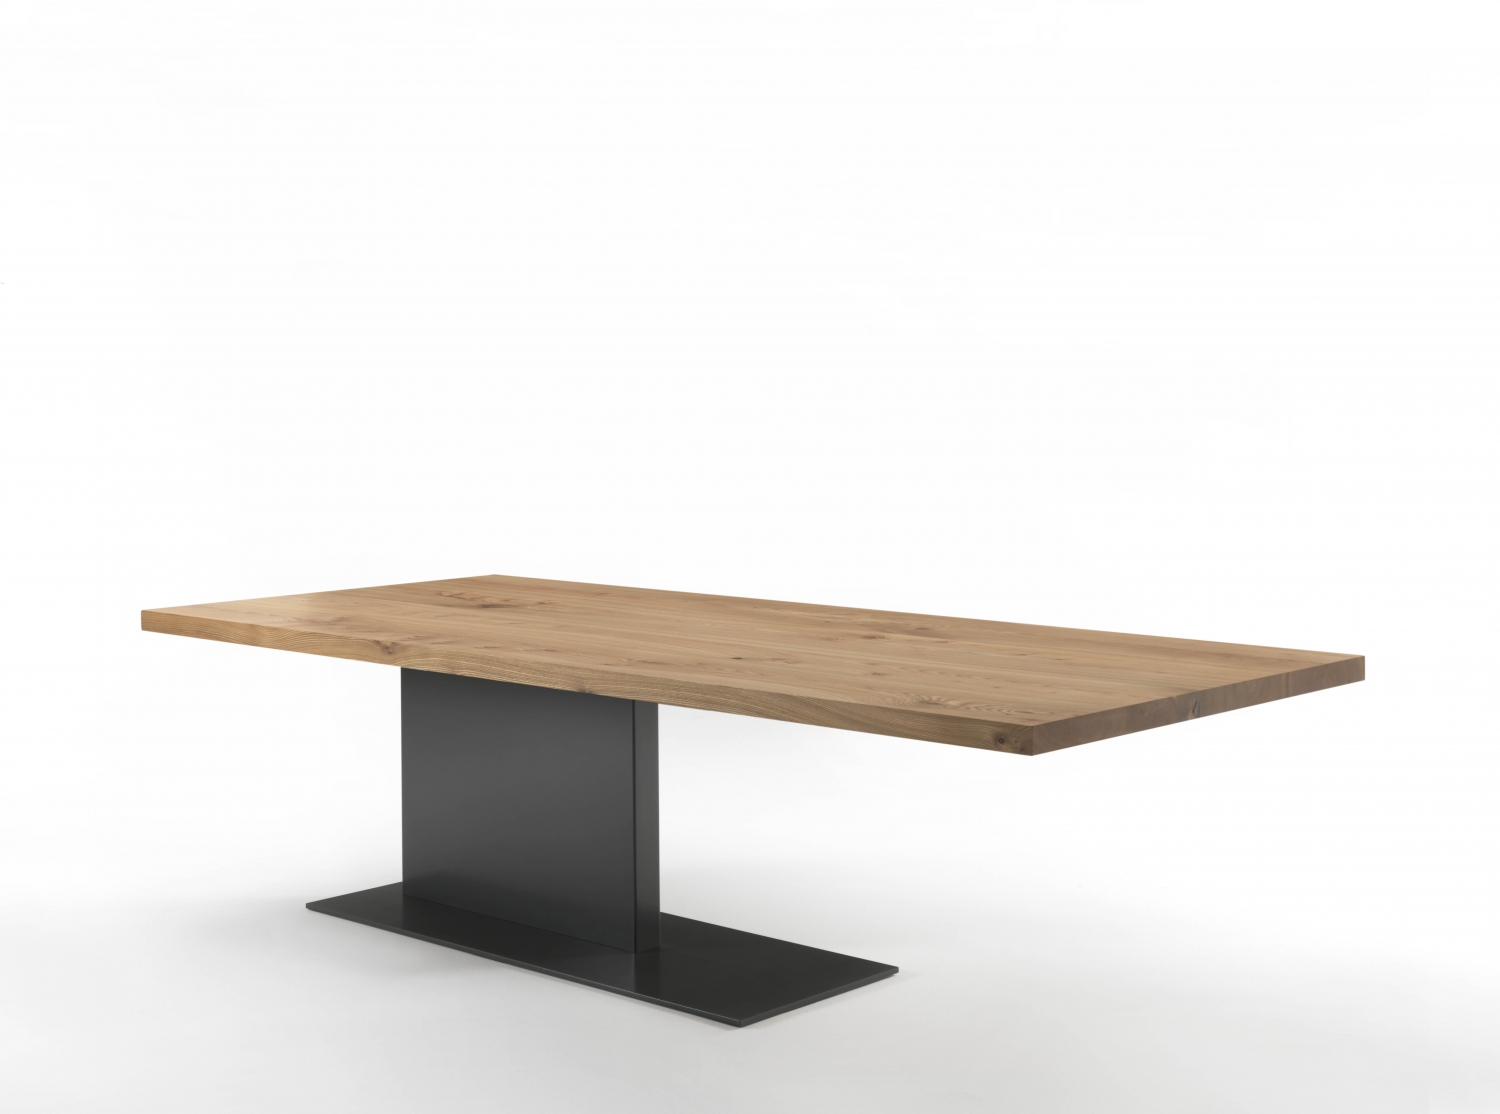 Liam riva 1920 tables - Table bois massif contemporaine ...